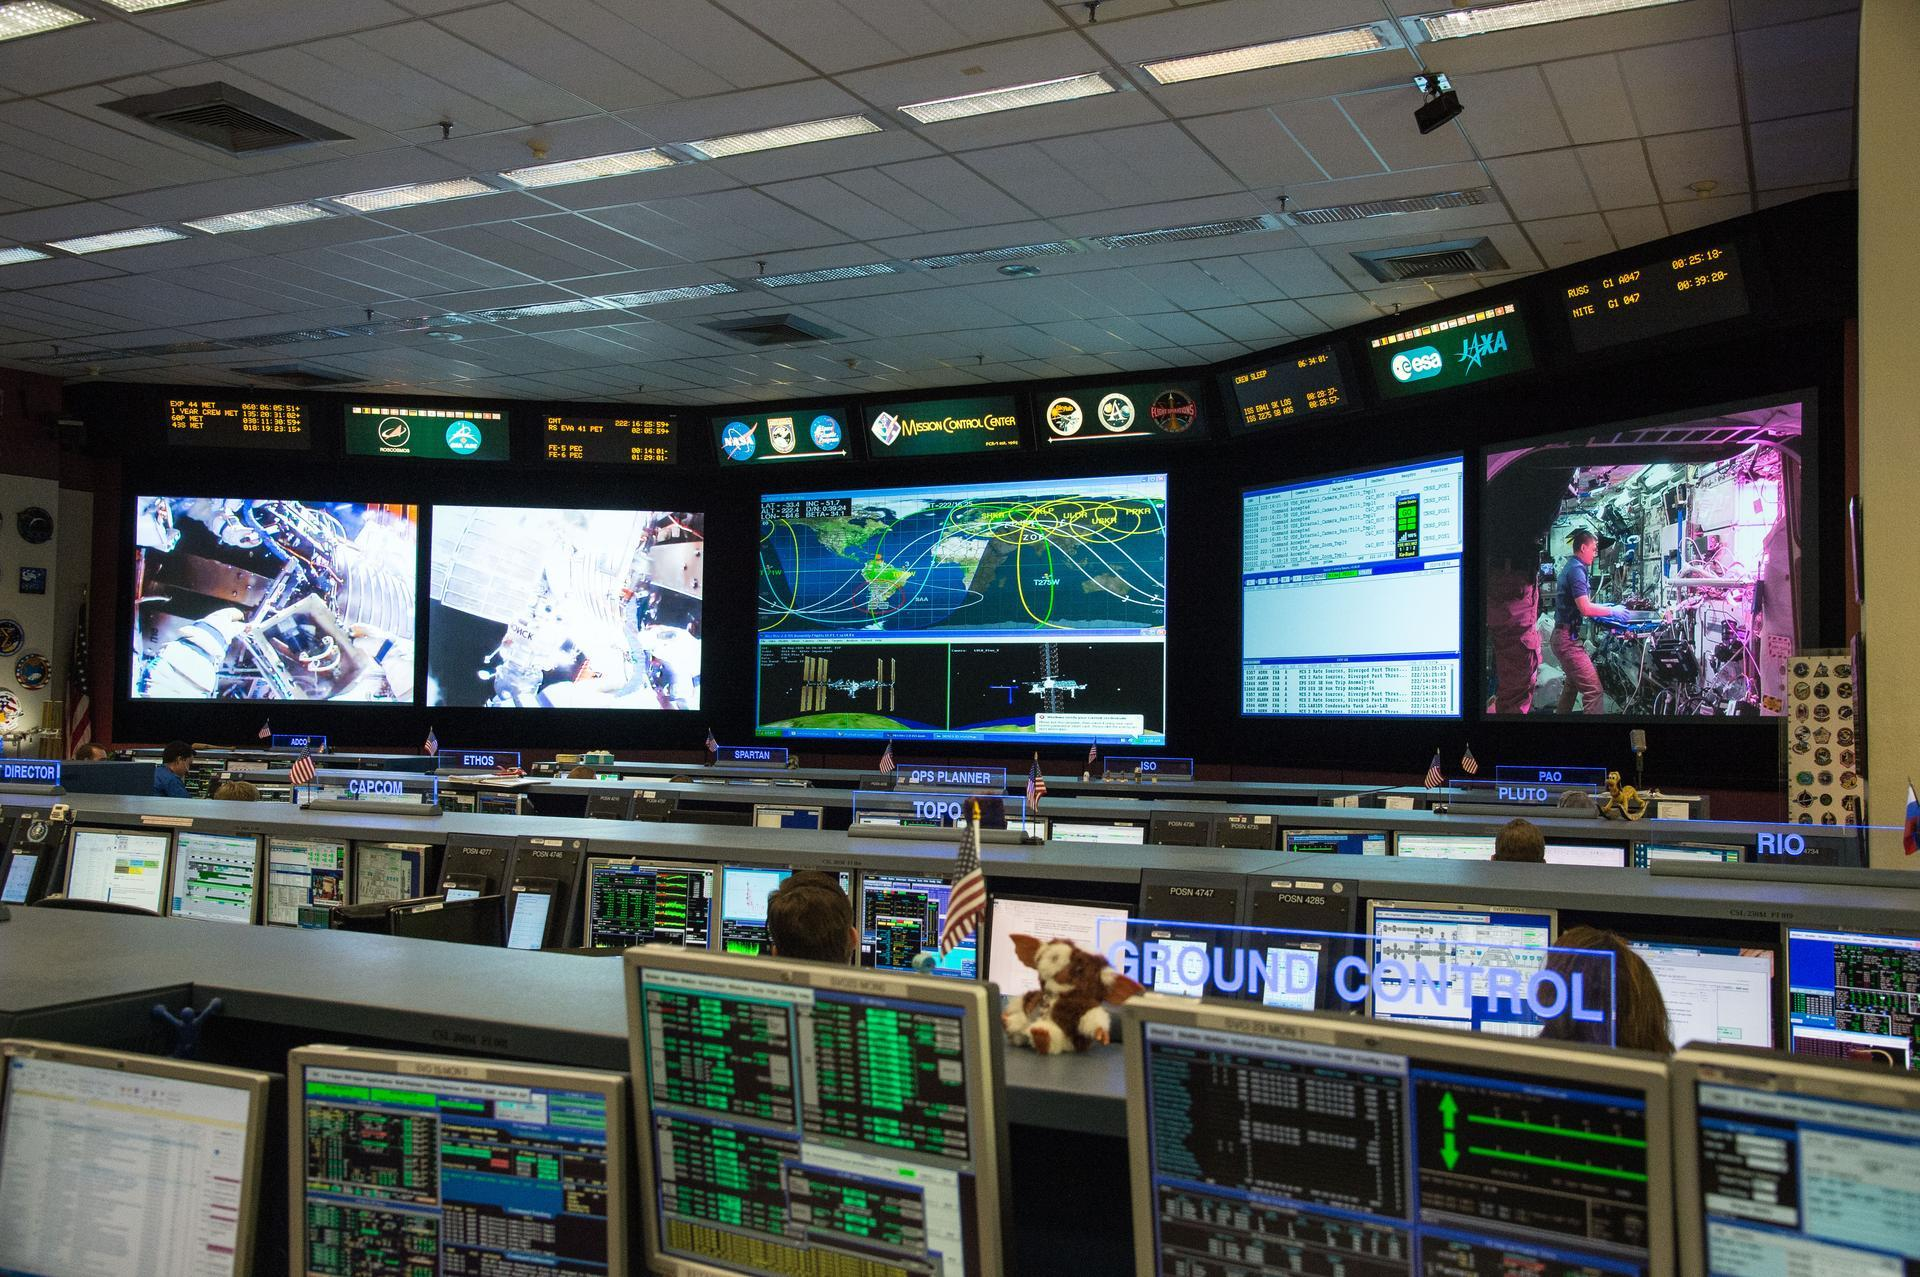 johnson space center mission control